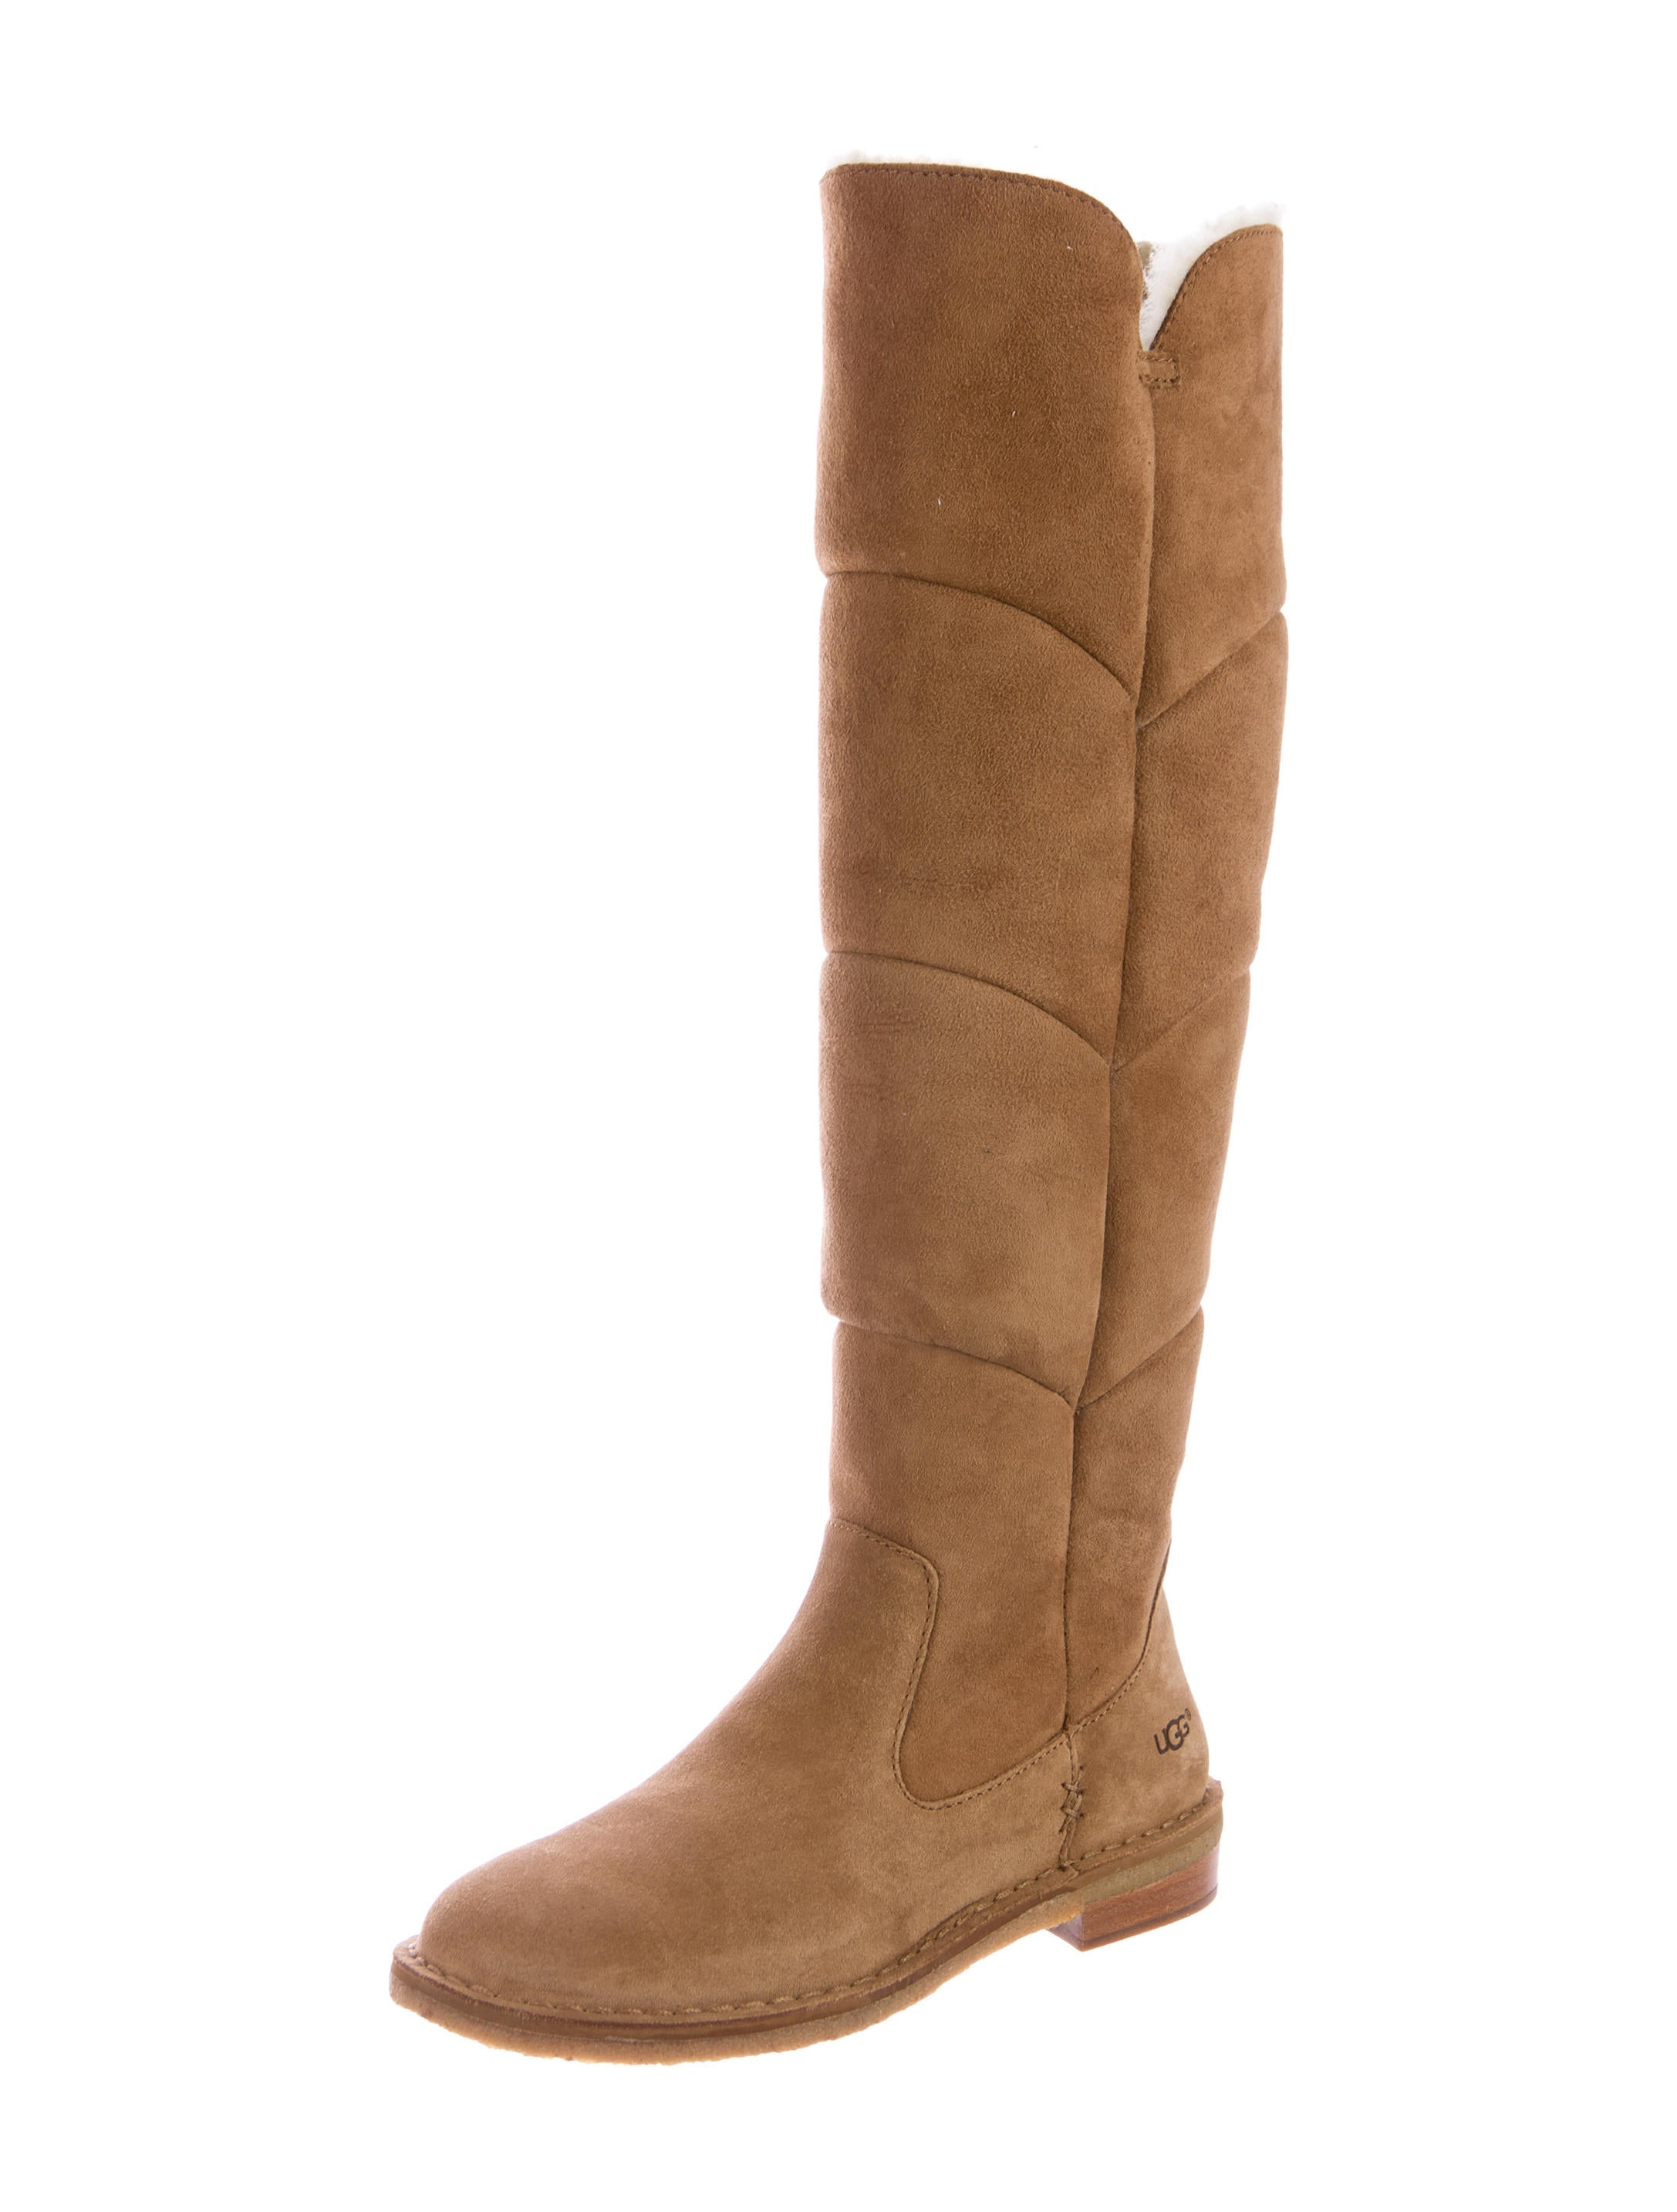 ugg australia shearling knee high boots shoes